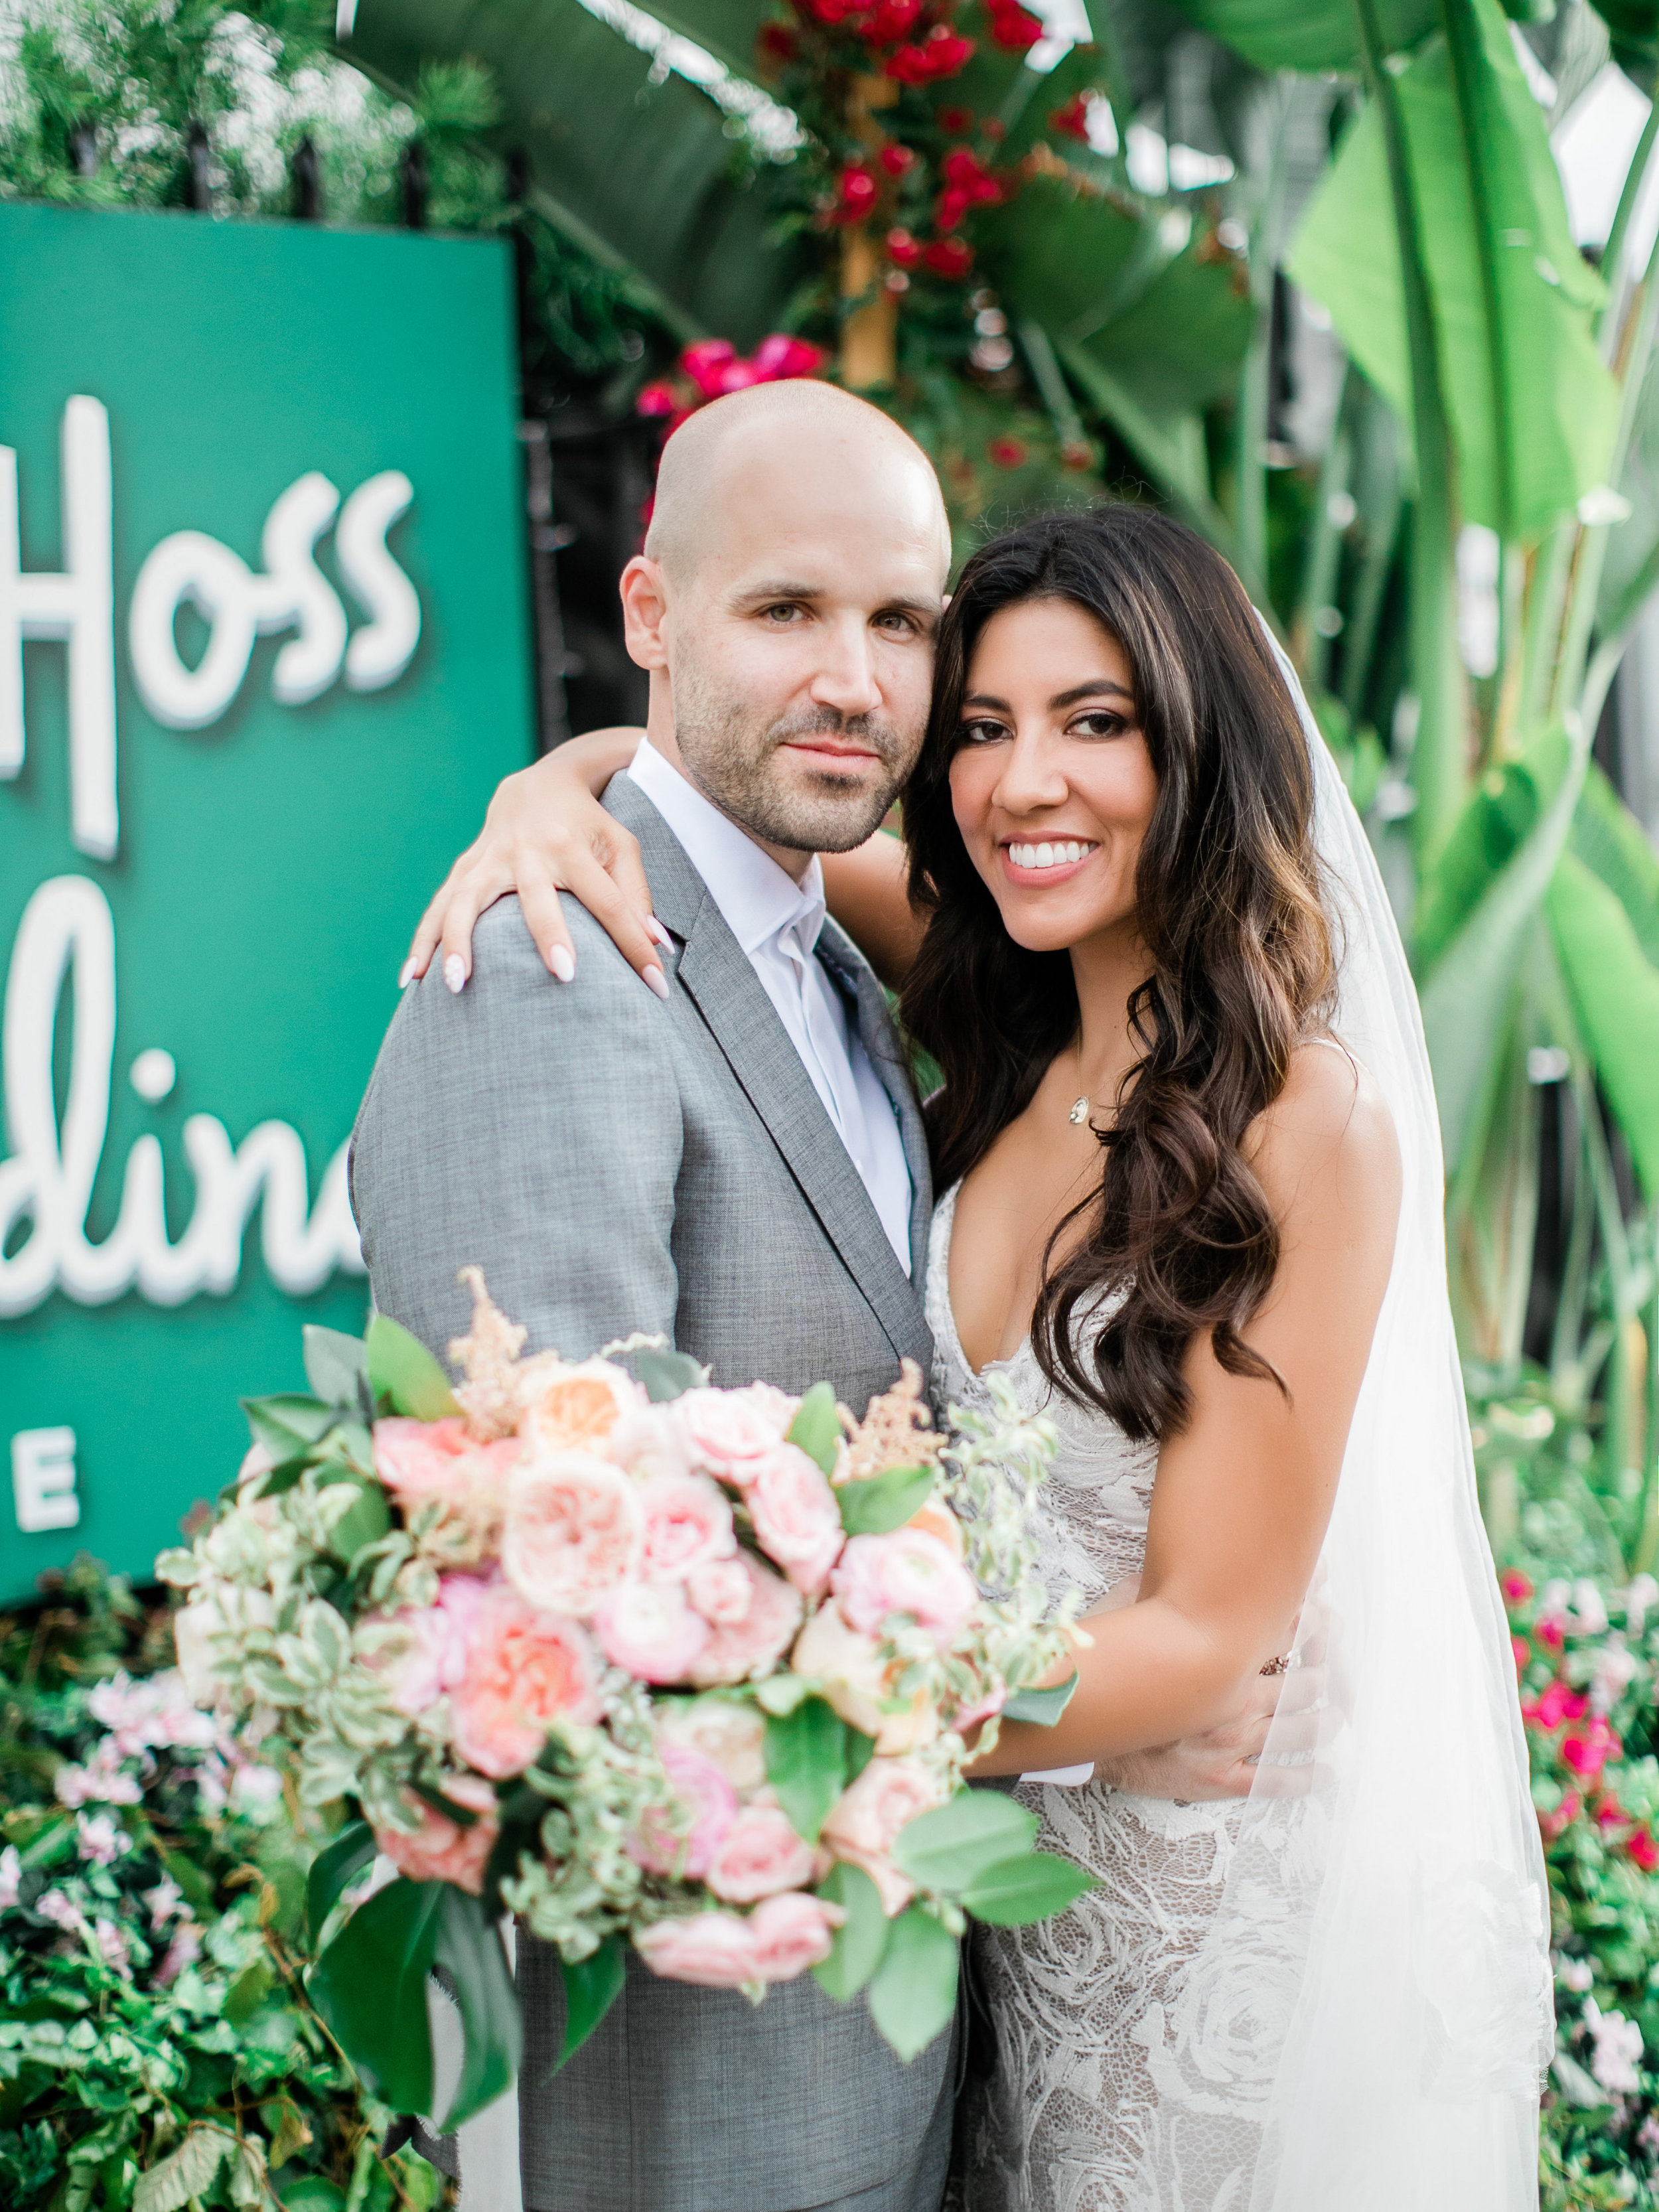 Stephanie + Brad - View Gallery